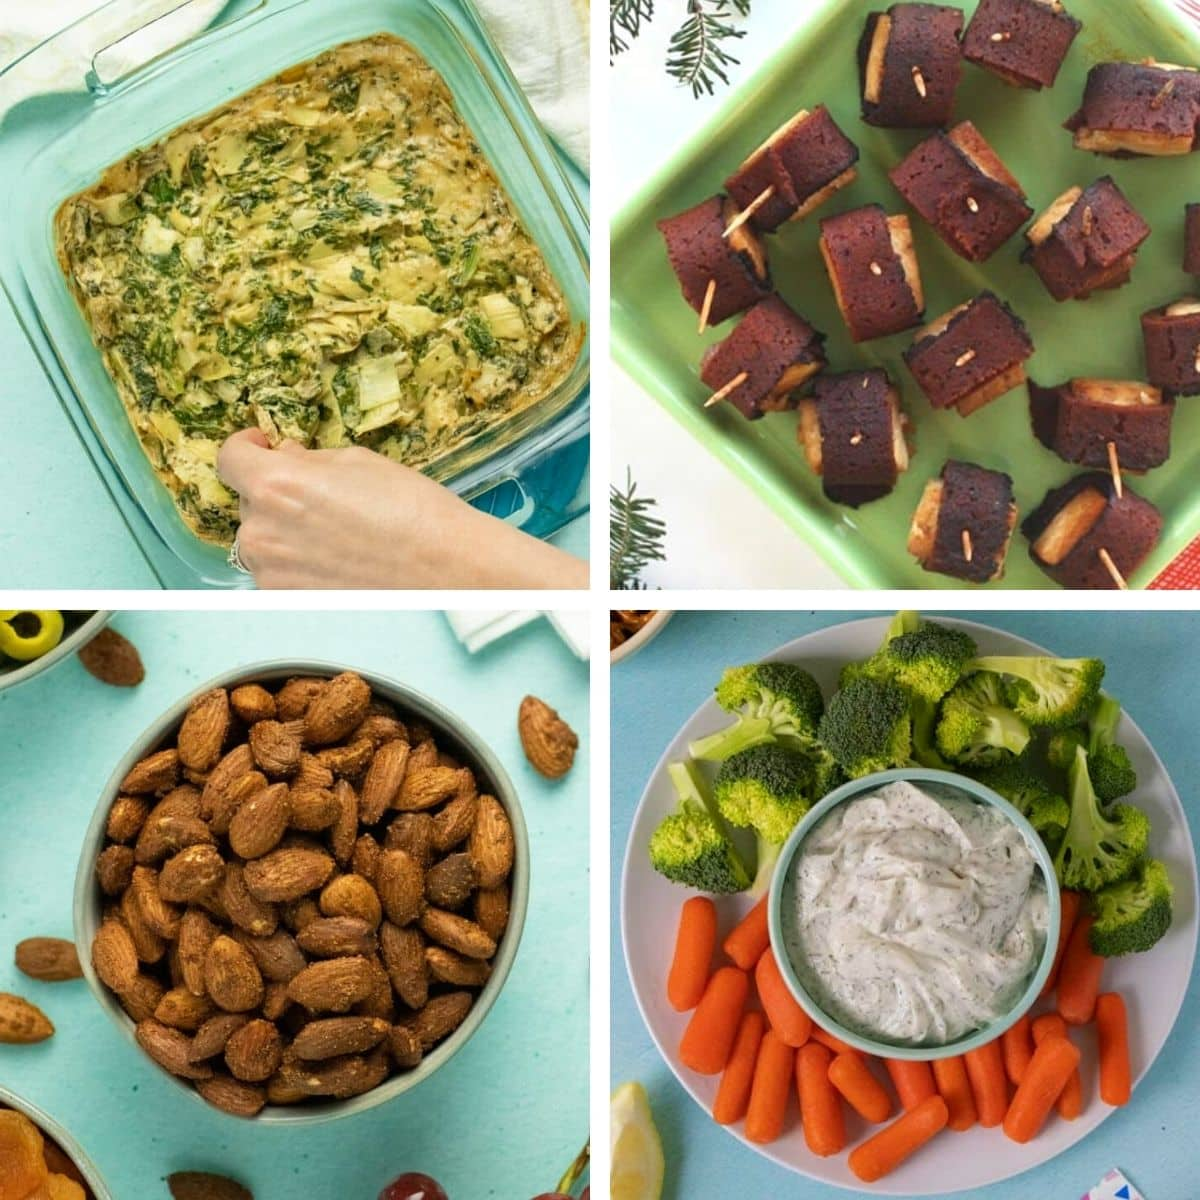 image collage of vegan party foods: spinach dip, tofu bites, garlic almonds, and ranch dip